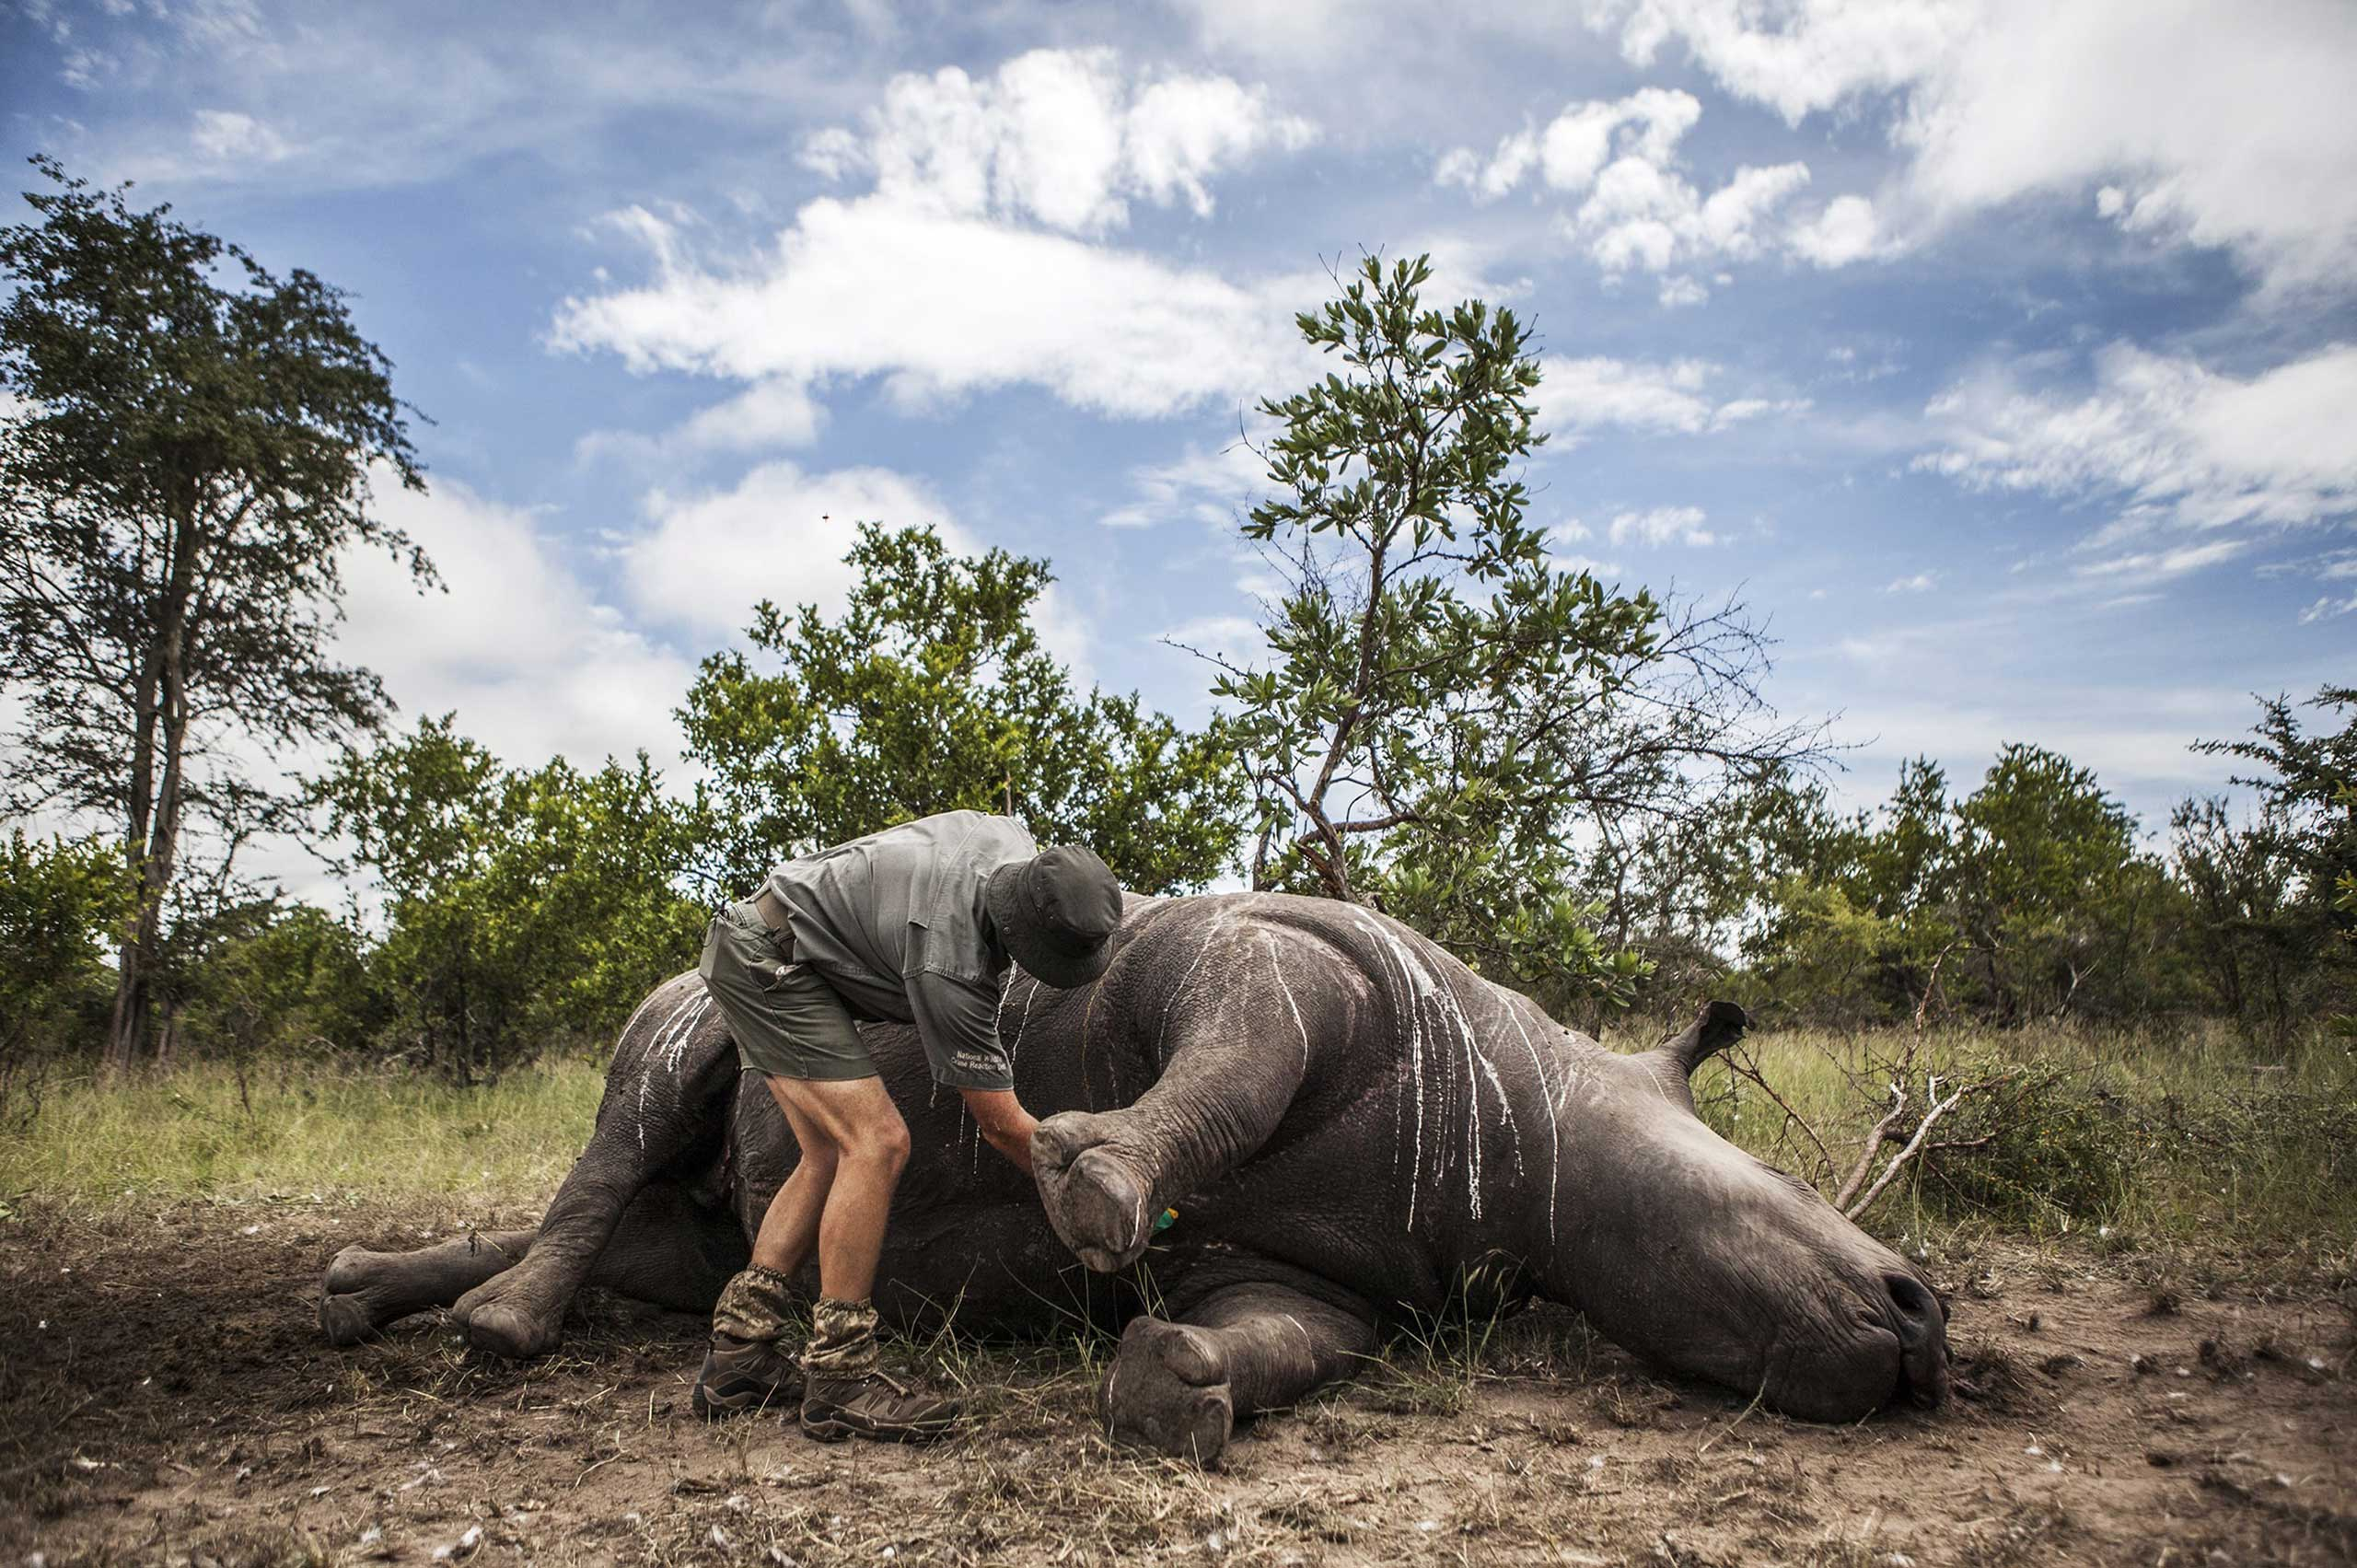 Feb. 4, 2015. Frikkie Rossouw of the SANParks' Environmental Crime Investigations Unit prepares the carcass of a rhino killed for its horn for postmortem in Kruger National Park, South Africa. According to reports, 1215 rhinos were poached in South Africa in 2014, of which 827 were in the Kruger National Park.